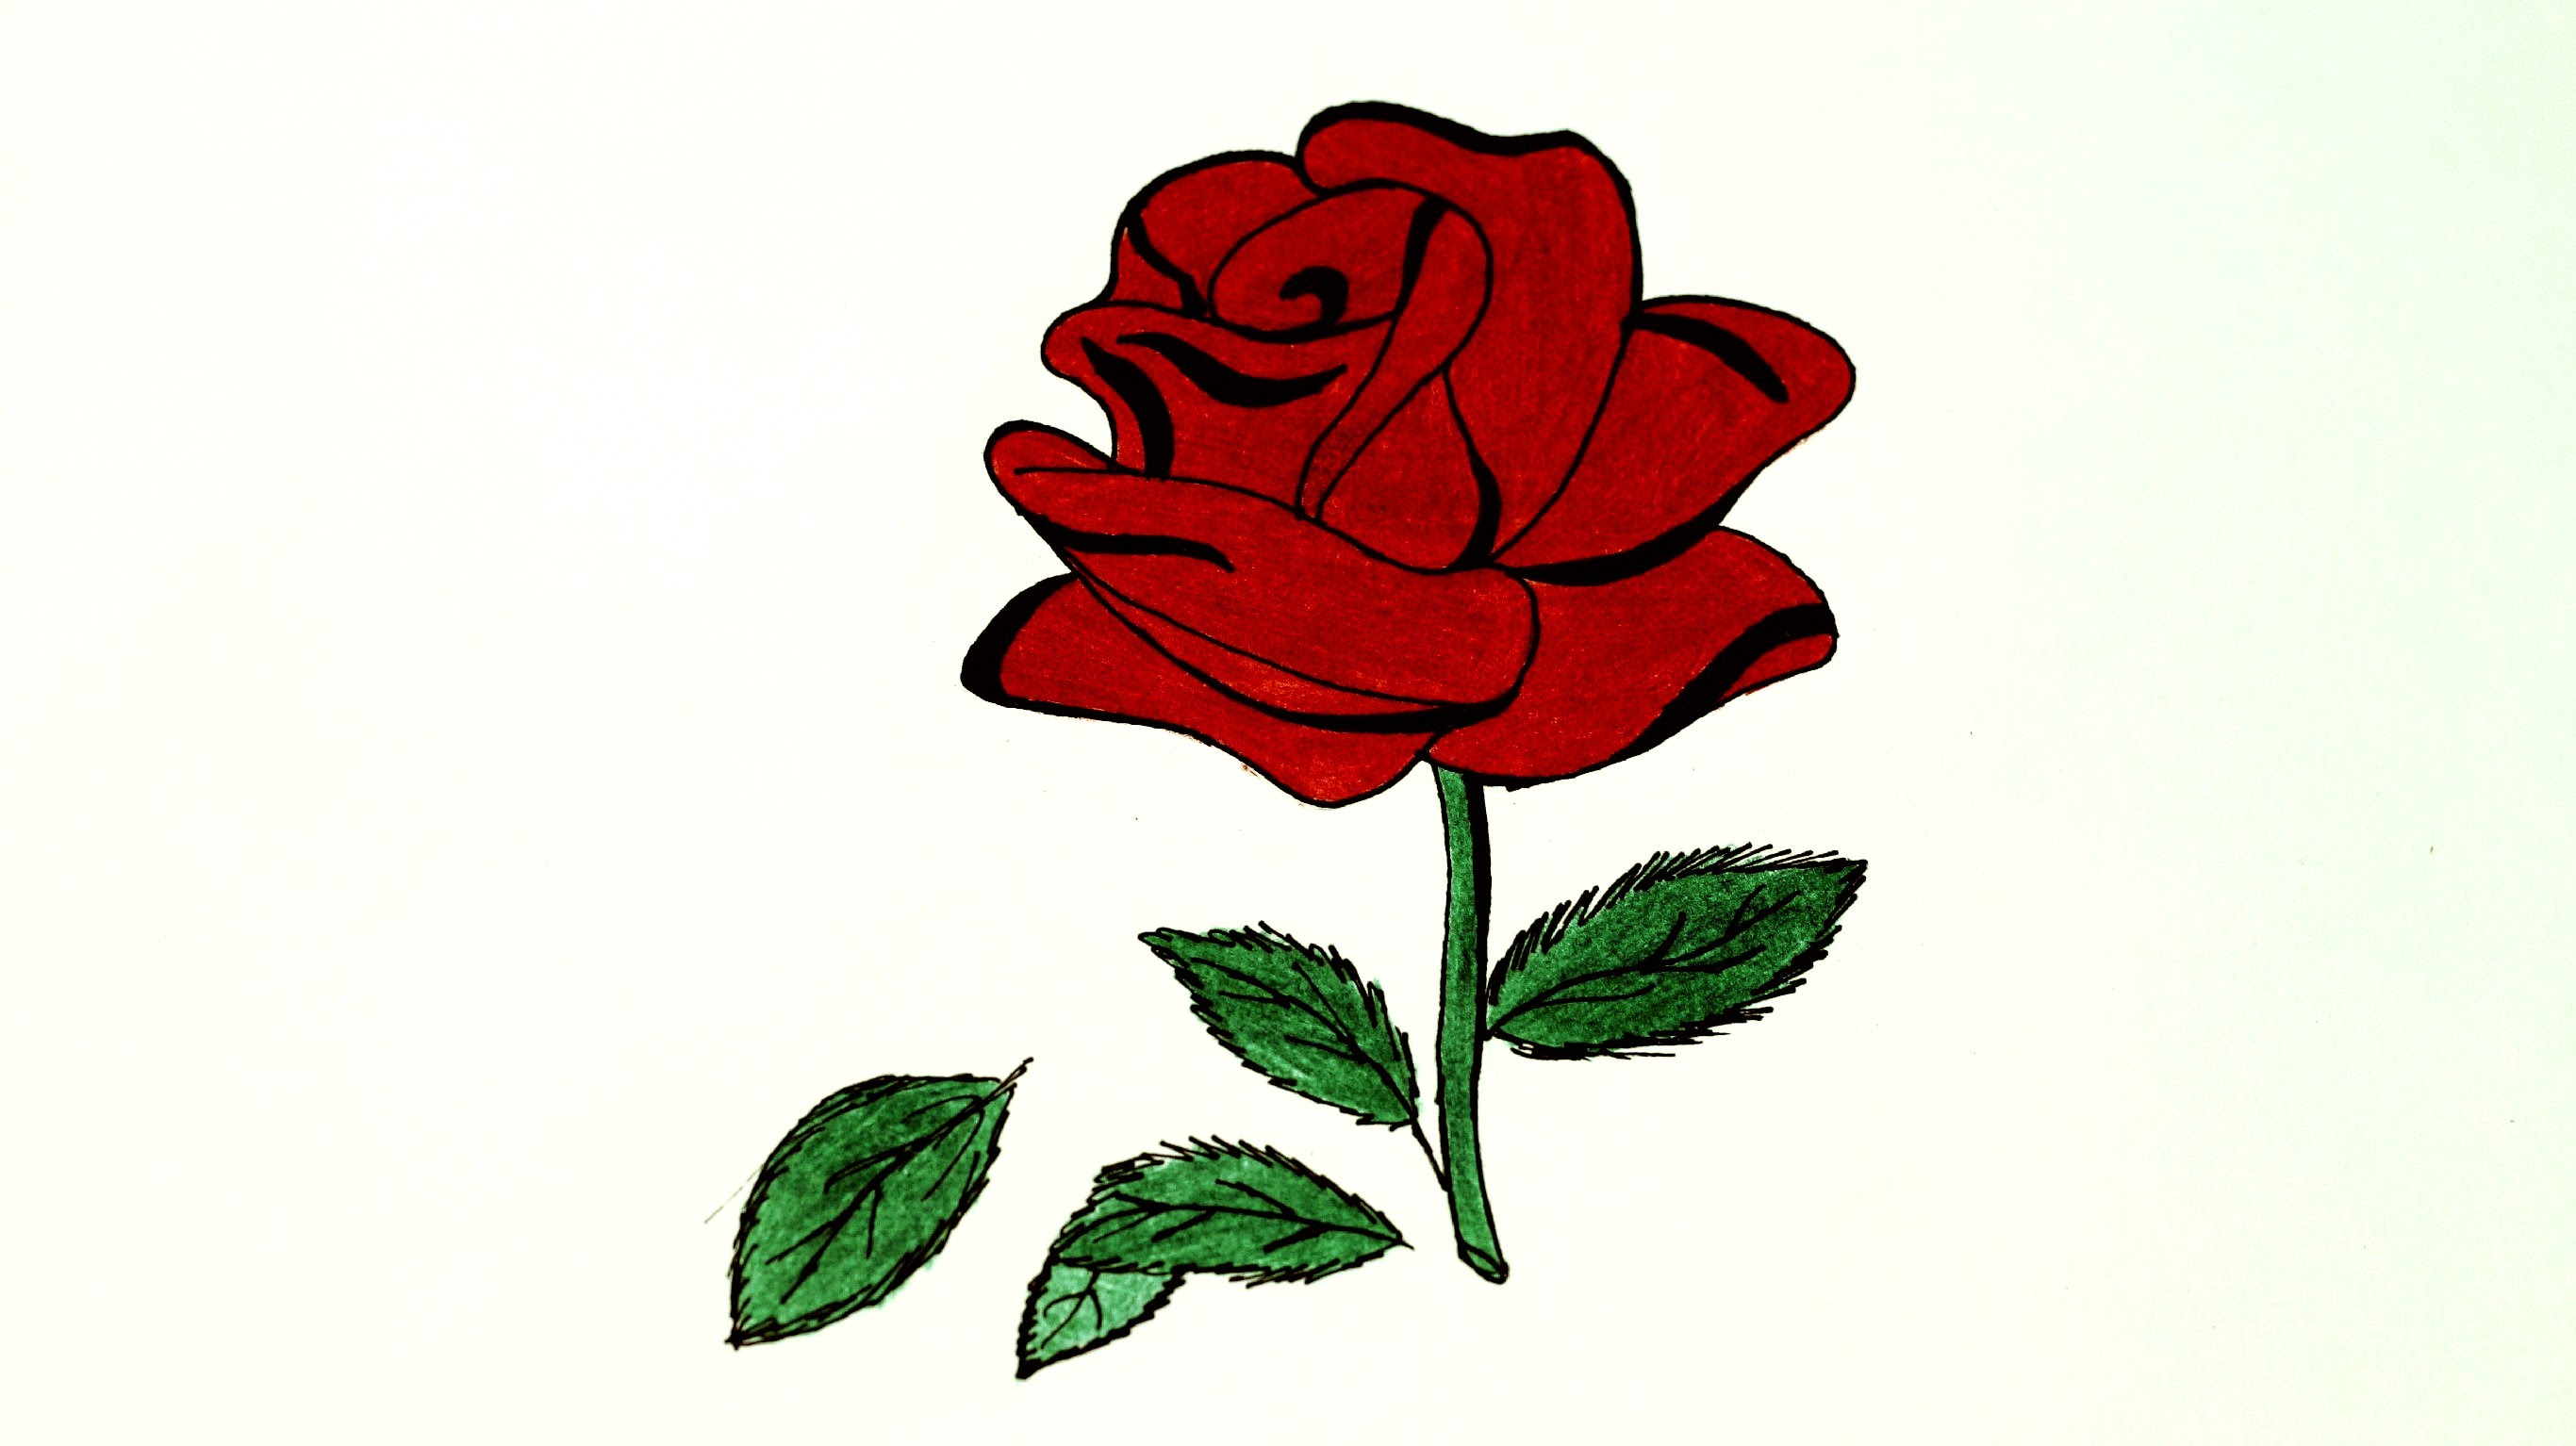 Drawn red rose ribbon drawing How लाल Rose Unsubscribe